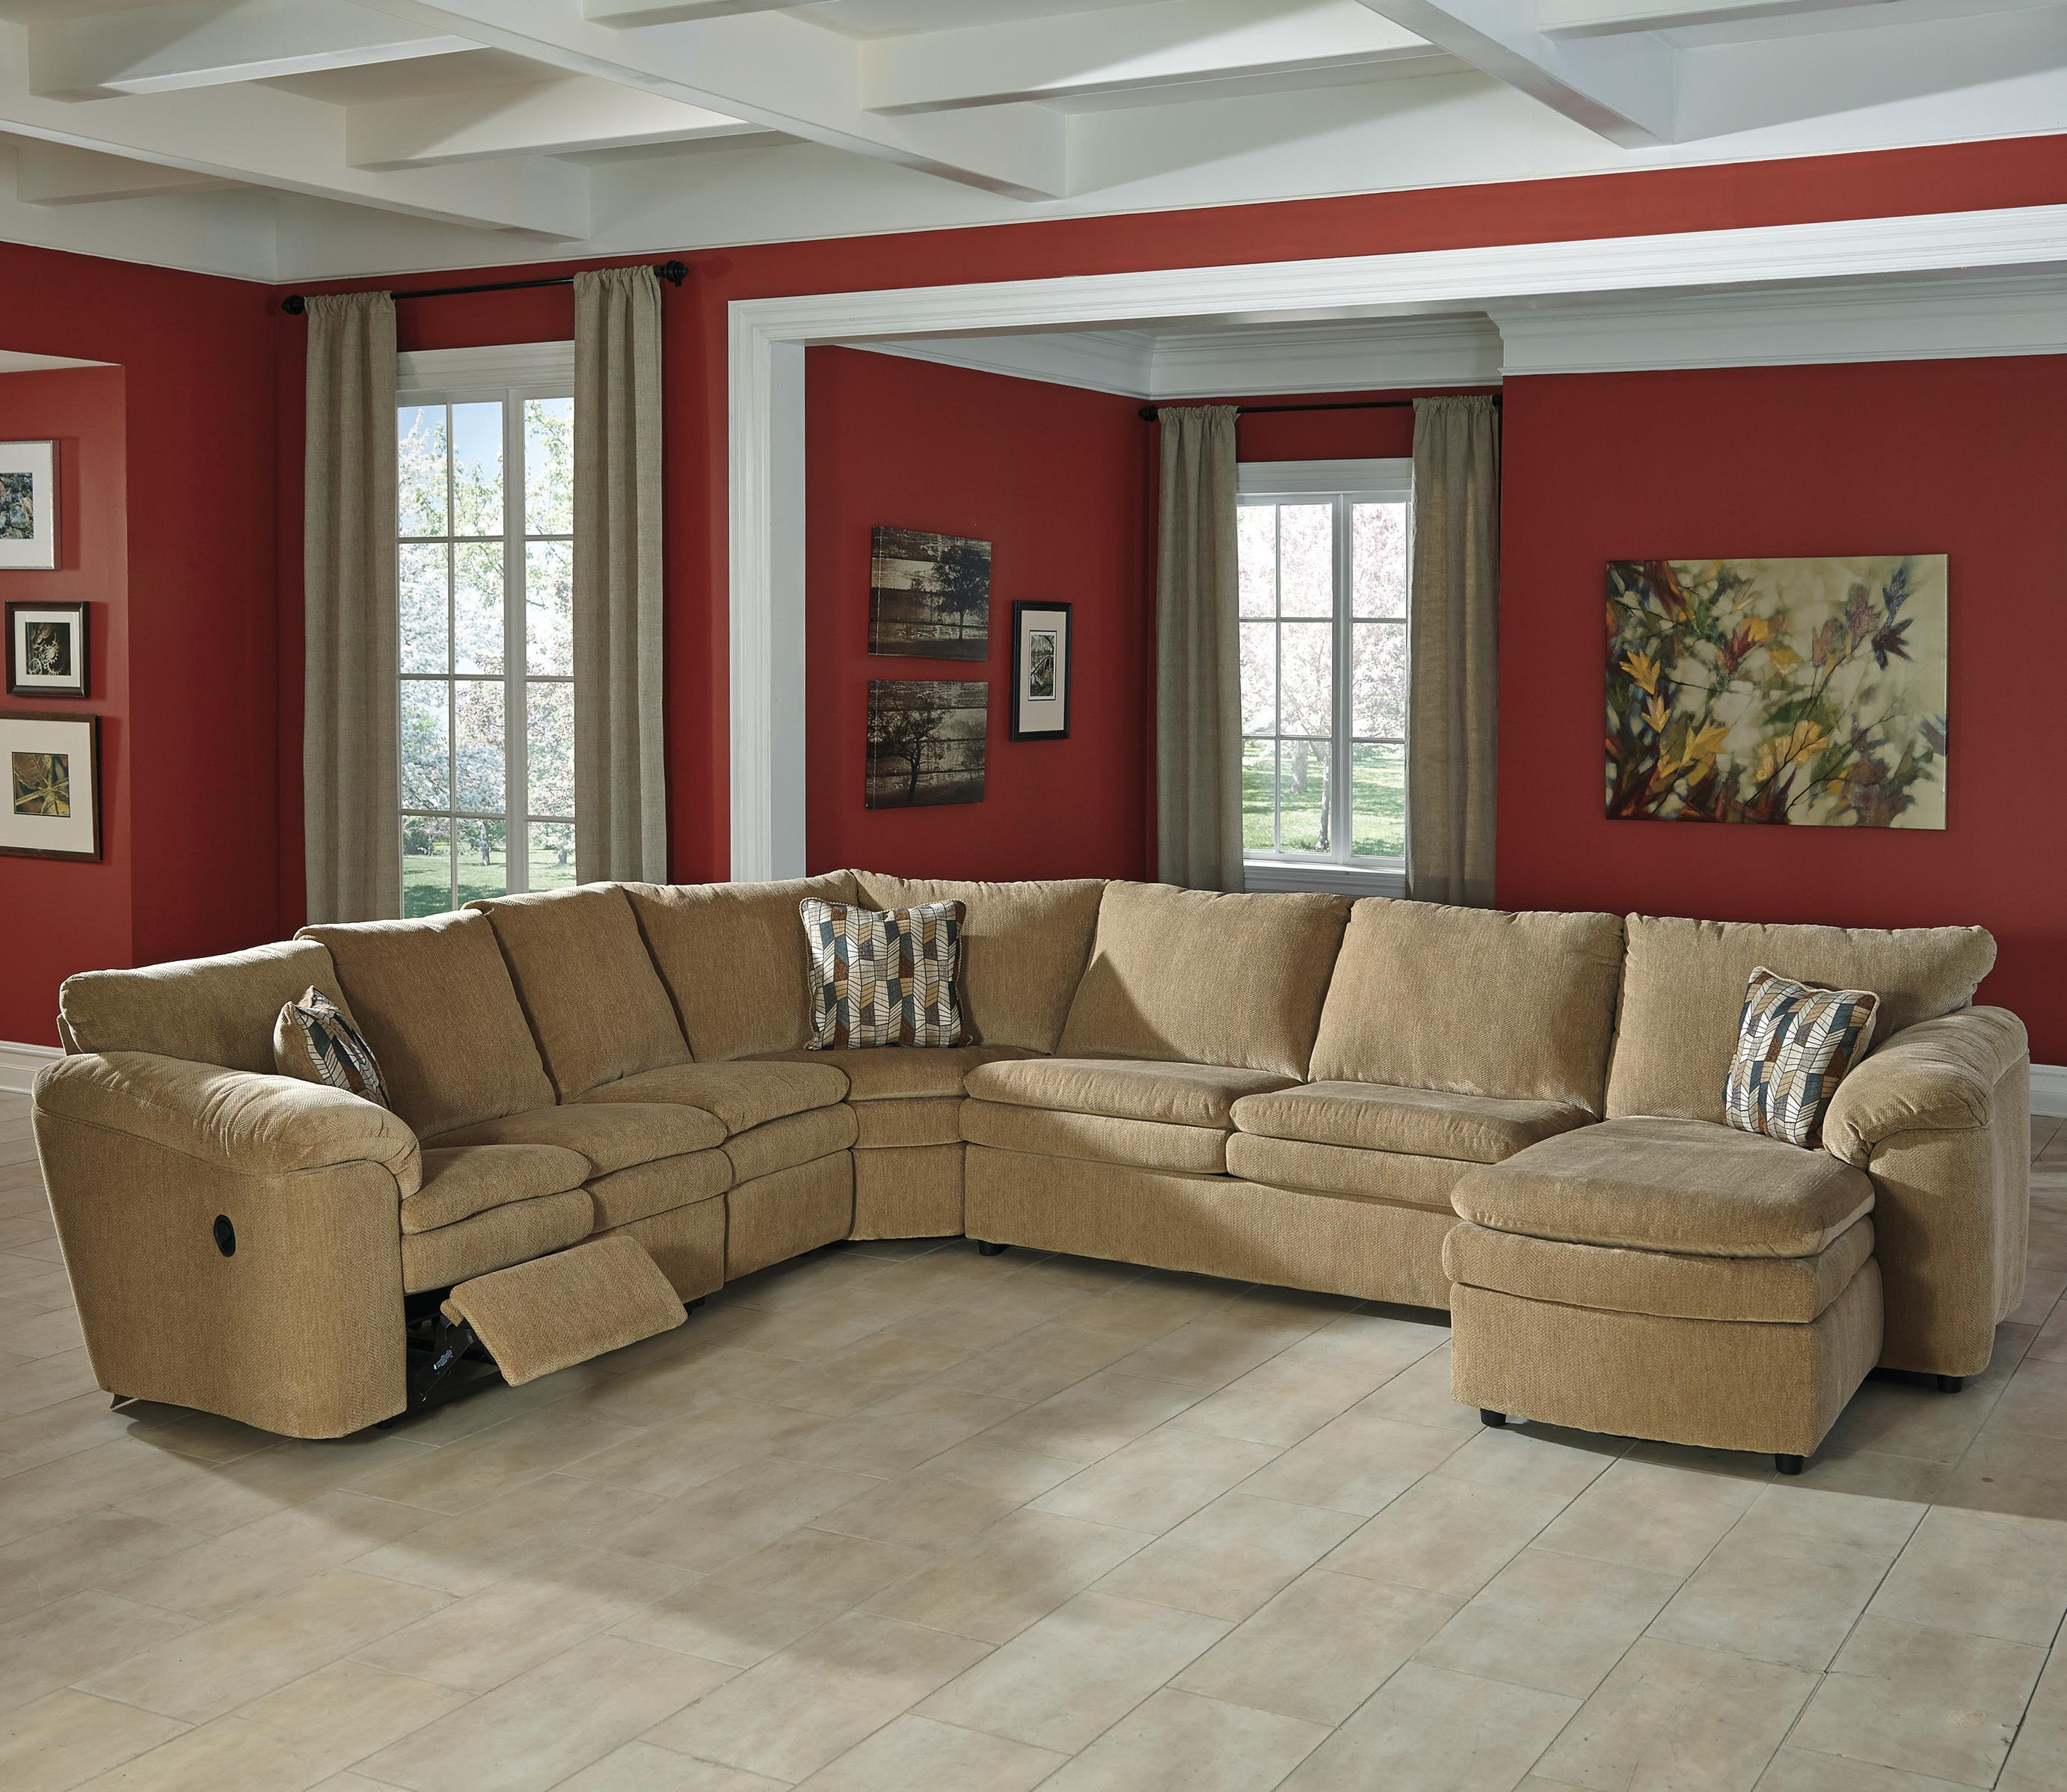 Signature Design by Ashley Coats 5-Piece Recl. Sectional w/ Chaise & Sleeper - Item Number: 4410084+46+77+71+17